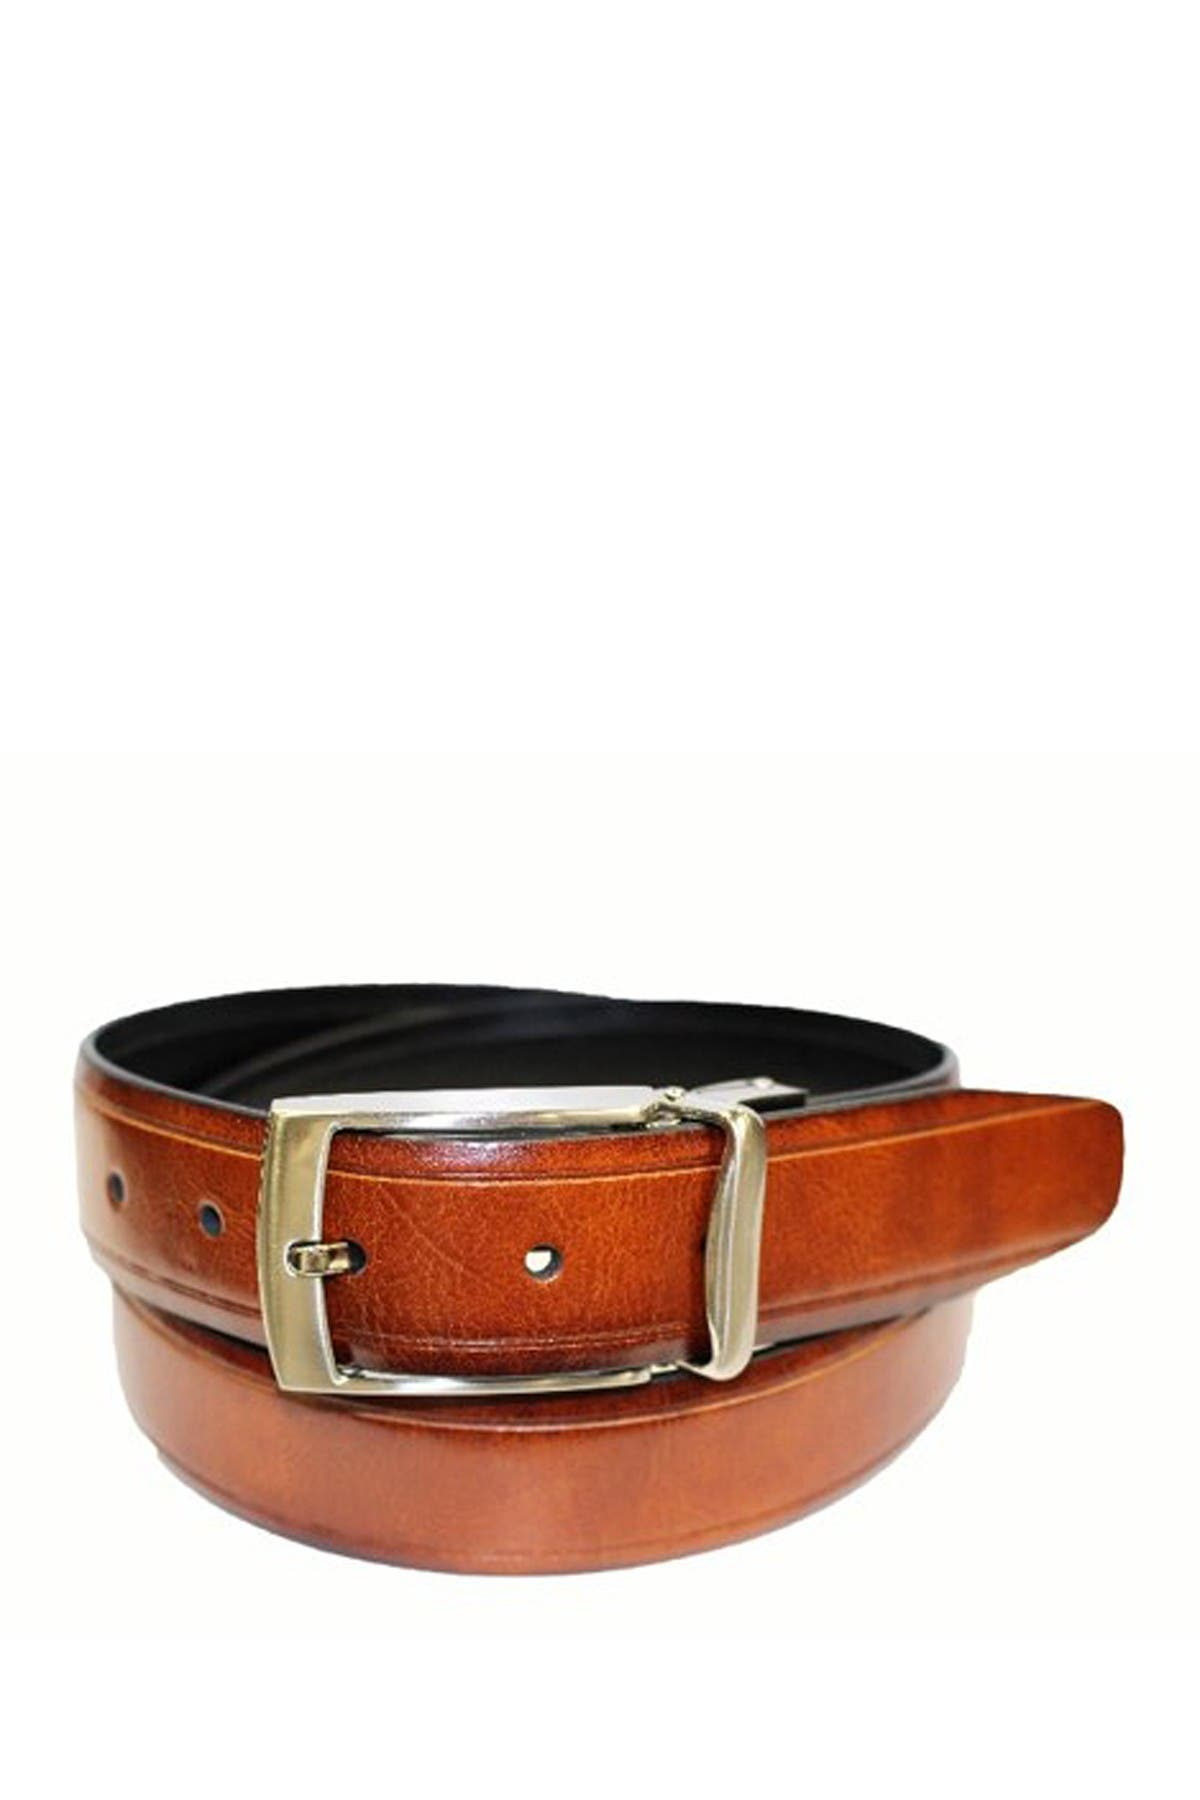 Image of BOSCA Reversible 35mm Smooth Leather Belt